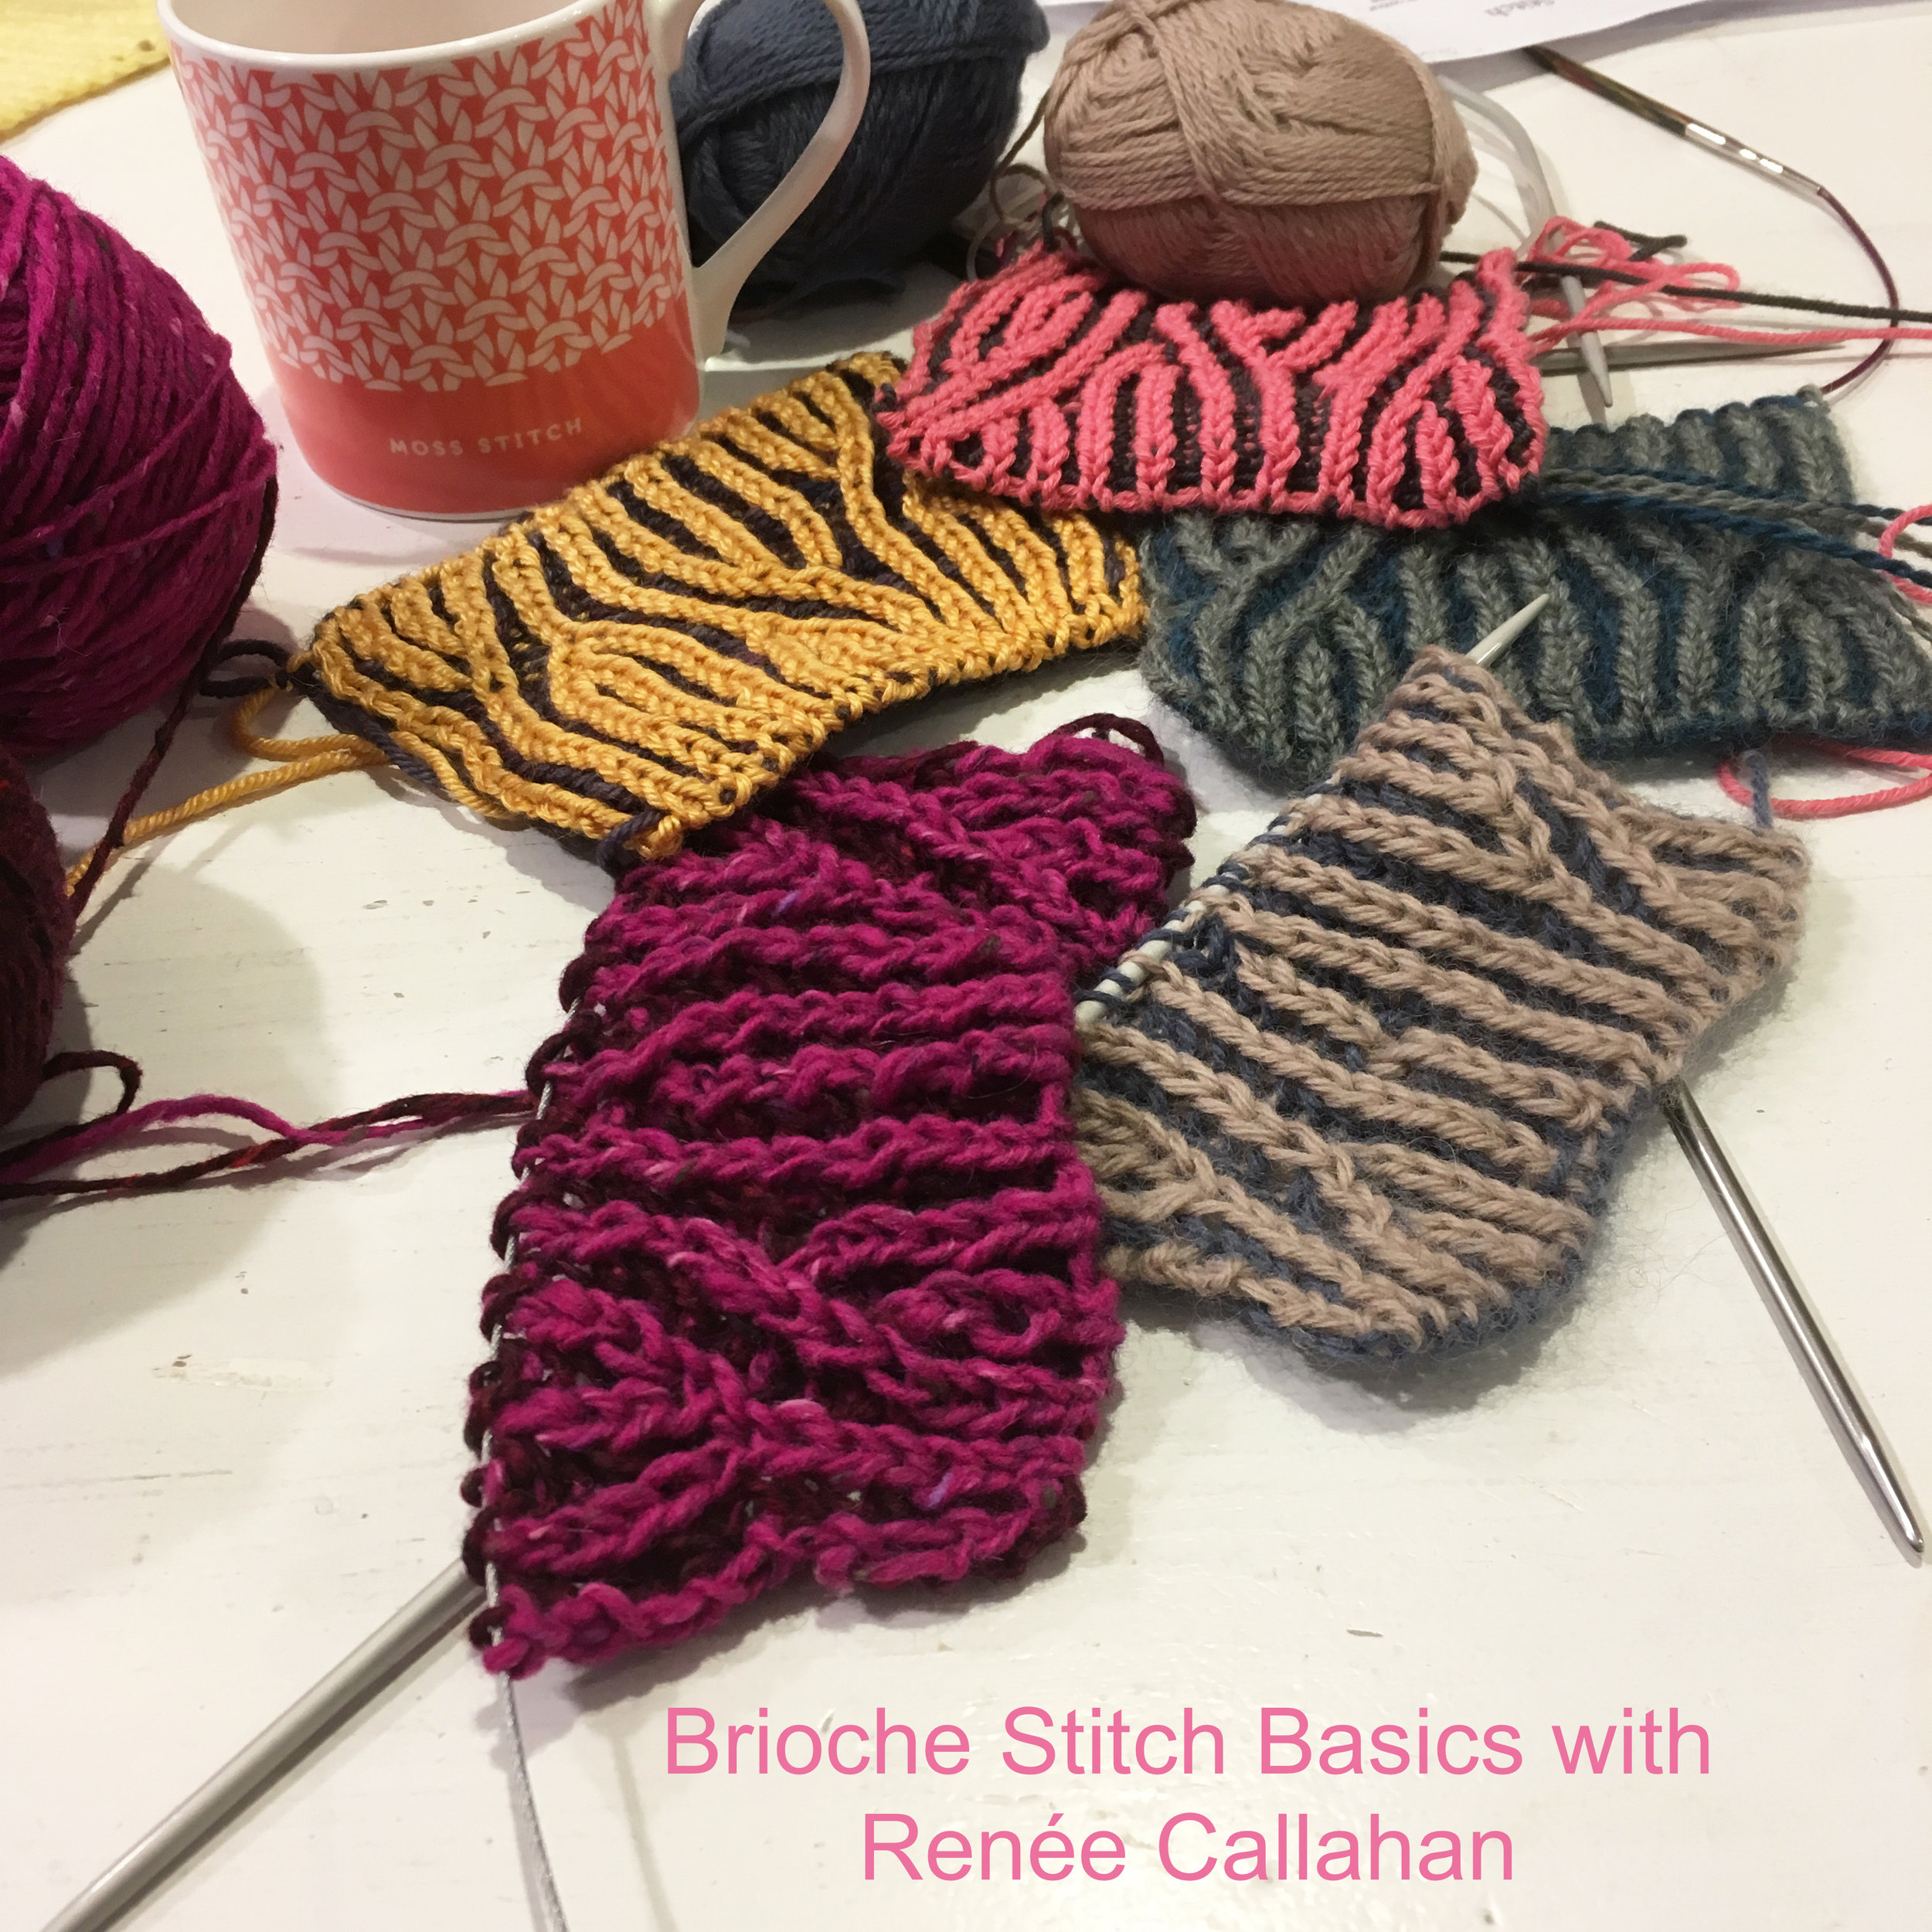 Brioche Stitch Basics.jpeg